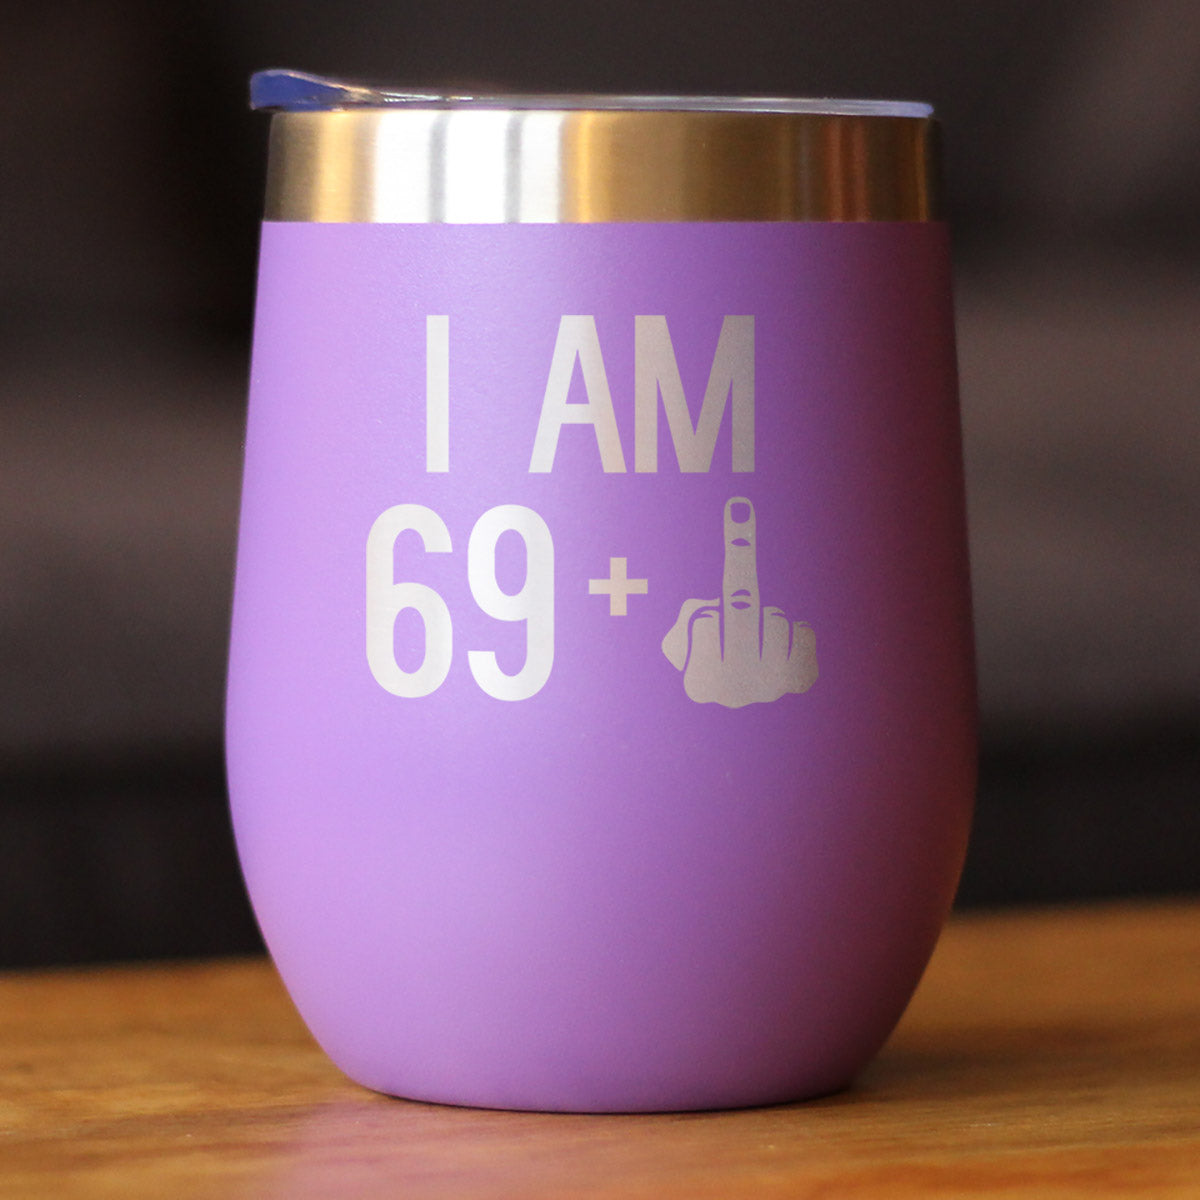 69 + 1 Middle Finger - Wine Tumbler